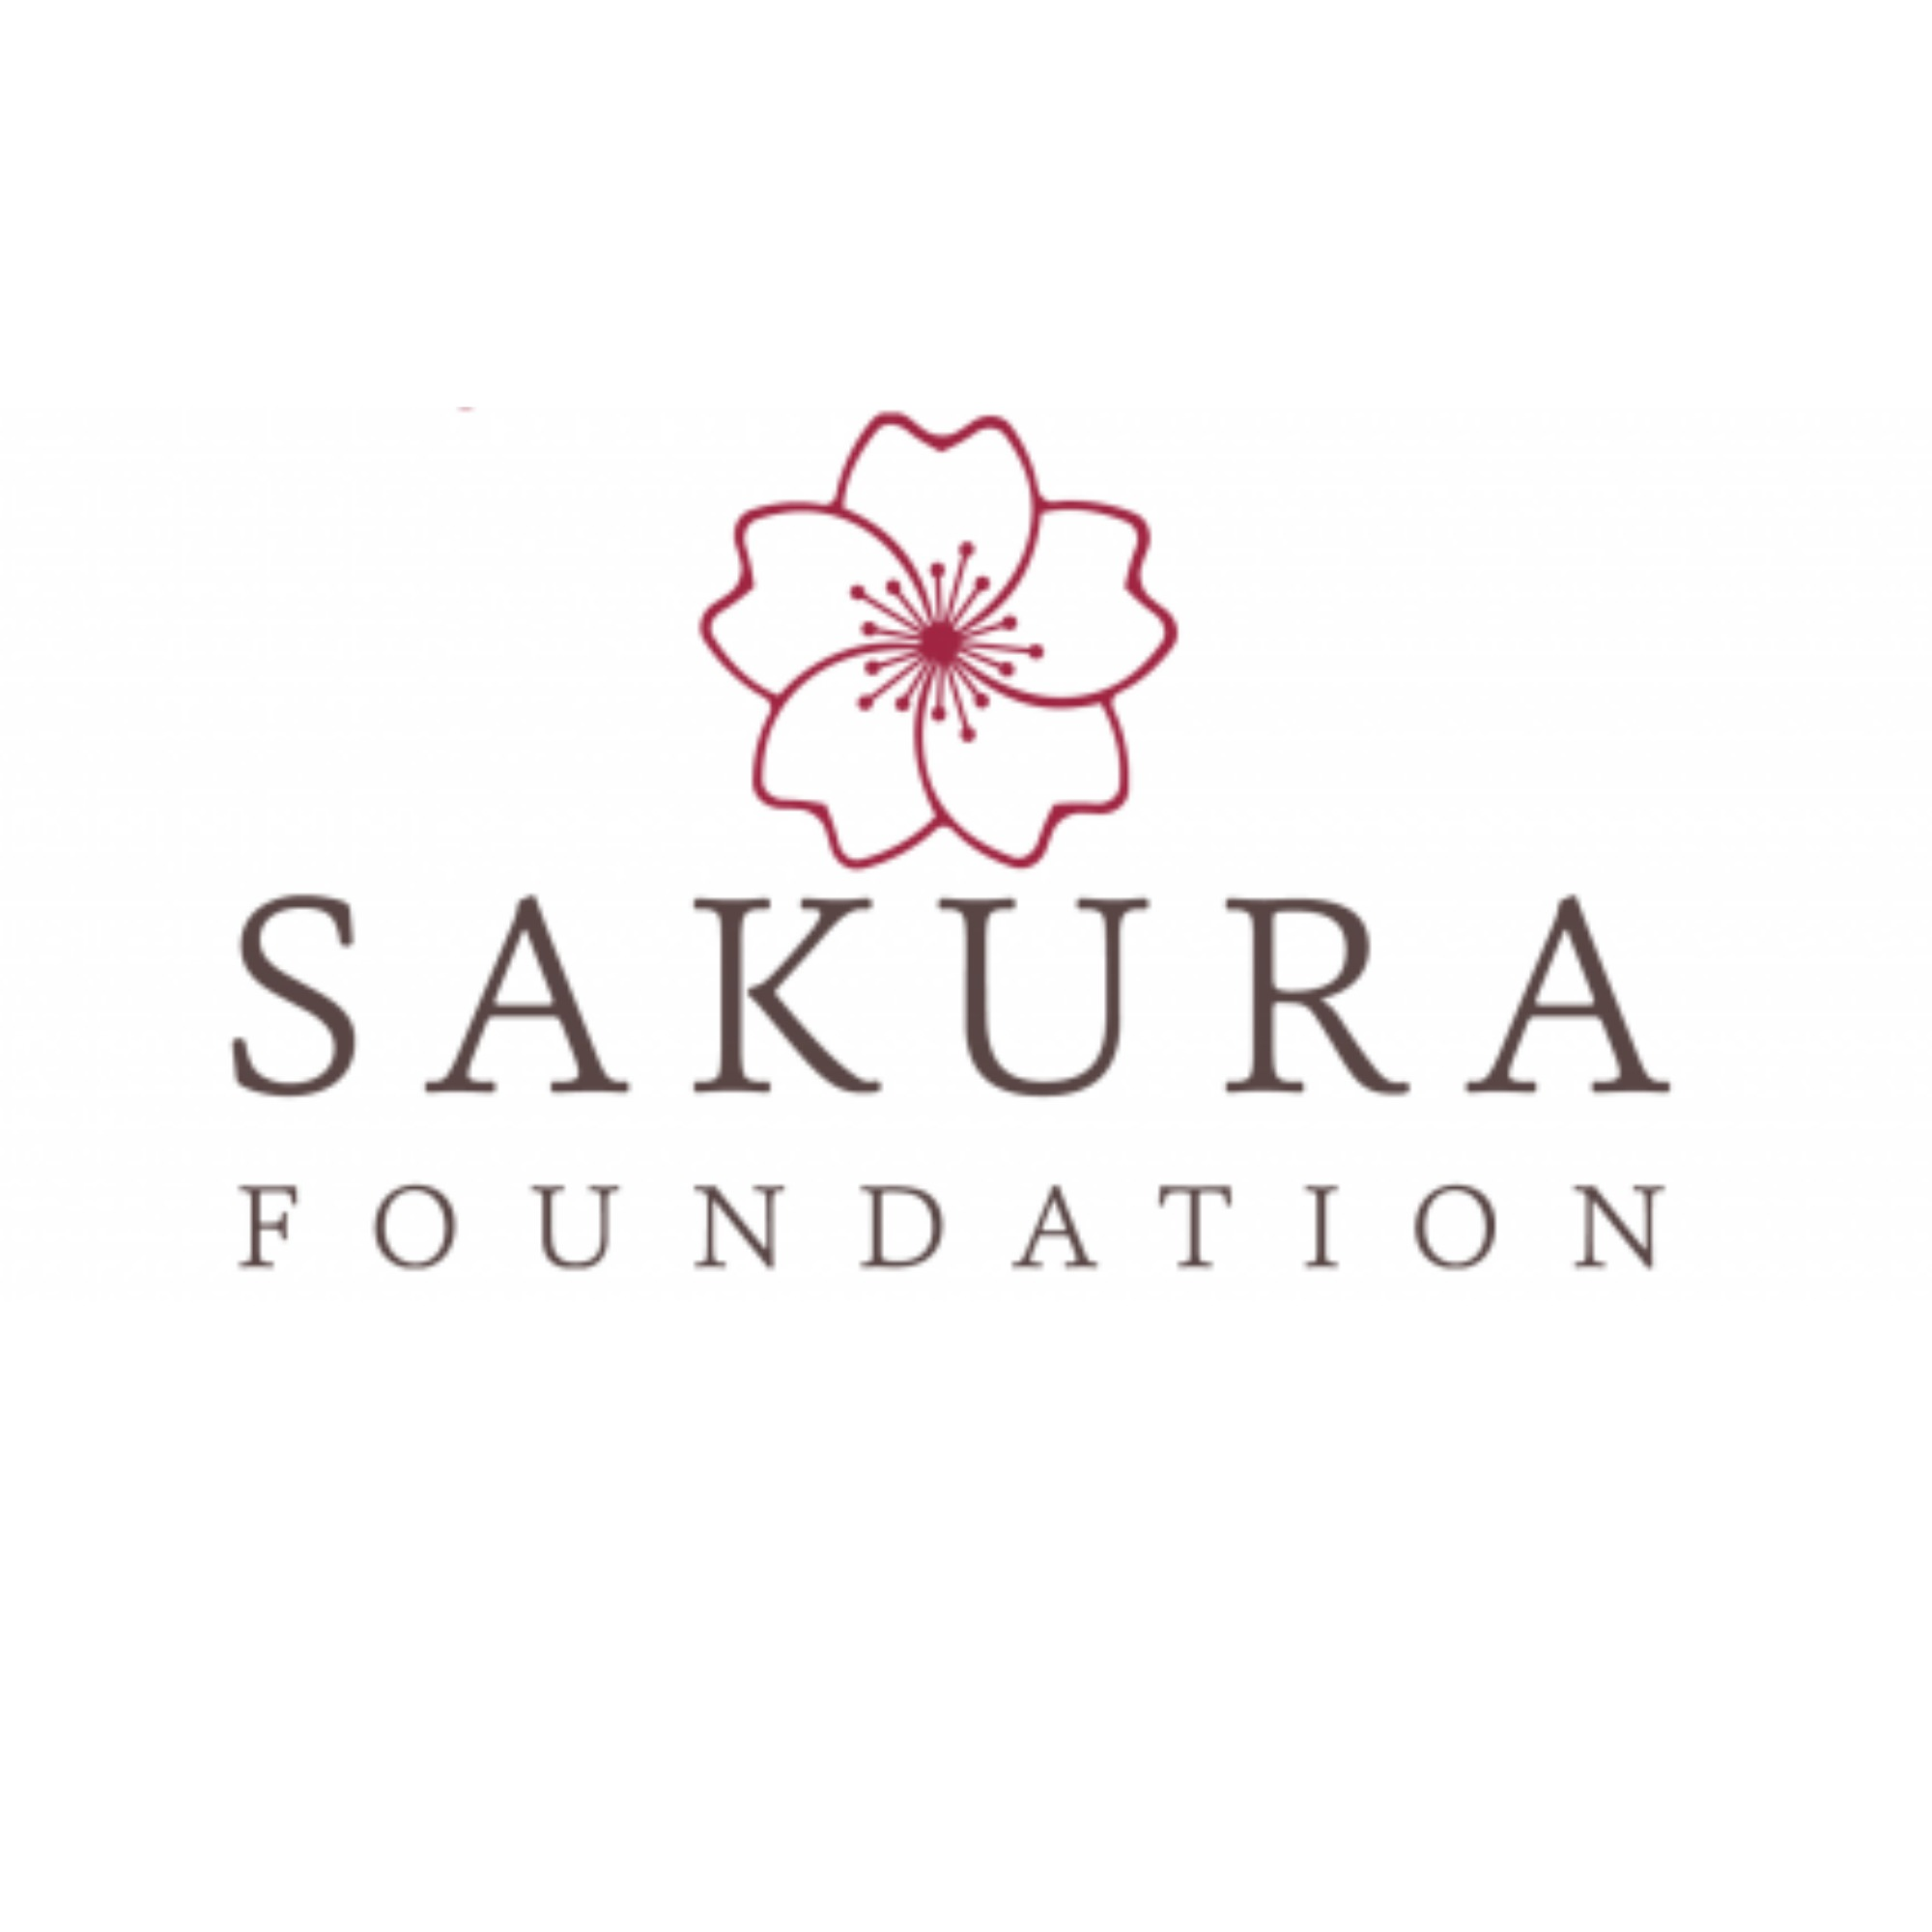 Sakura Foundation